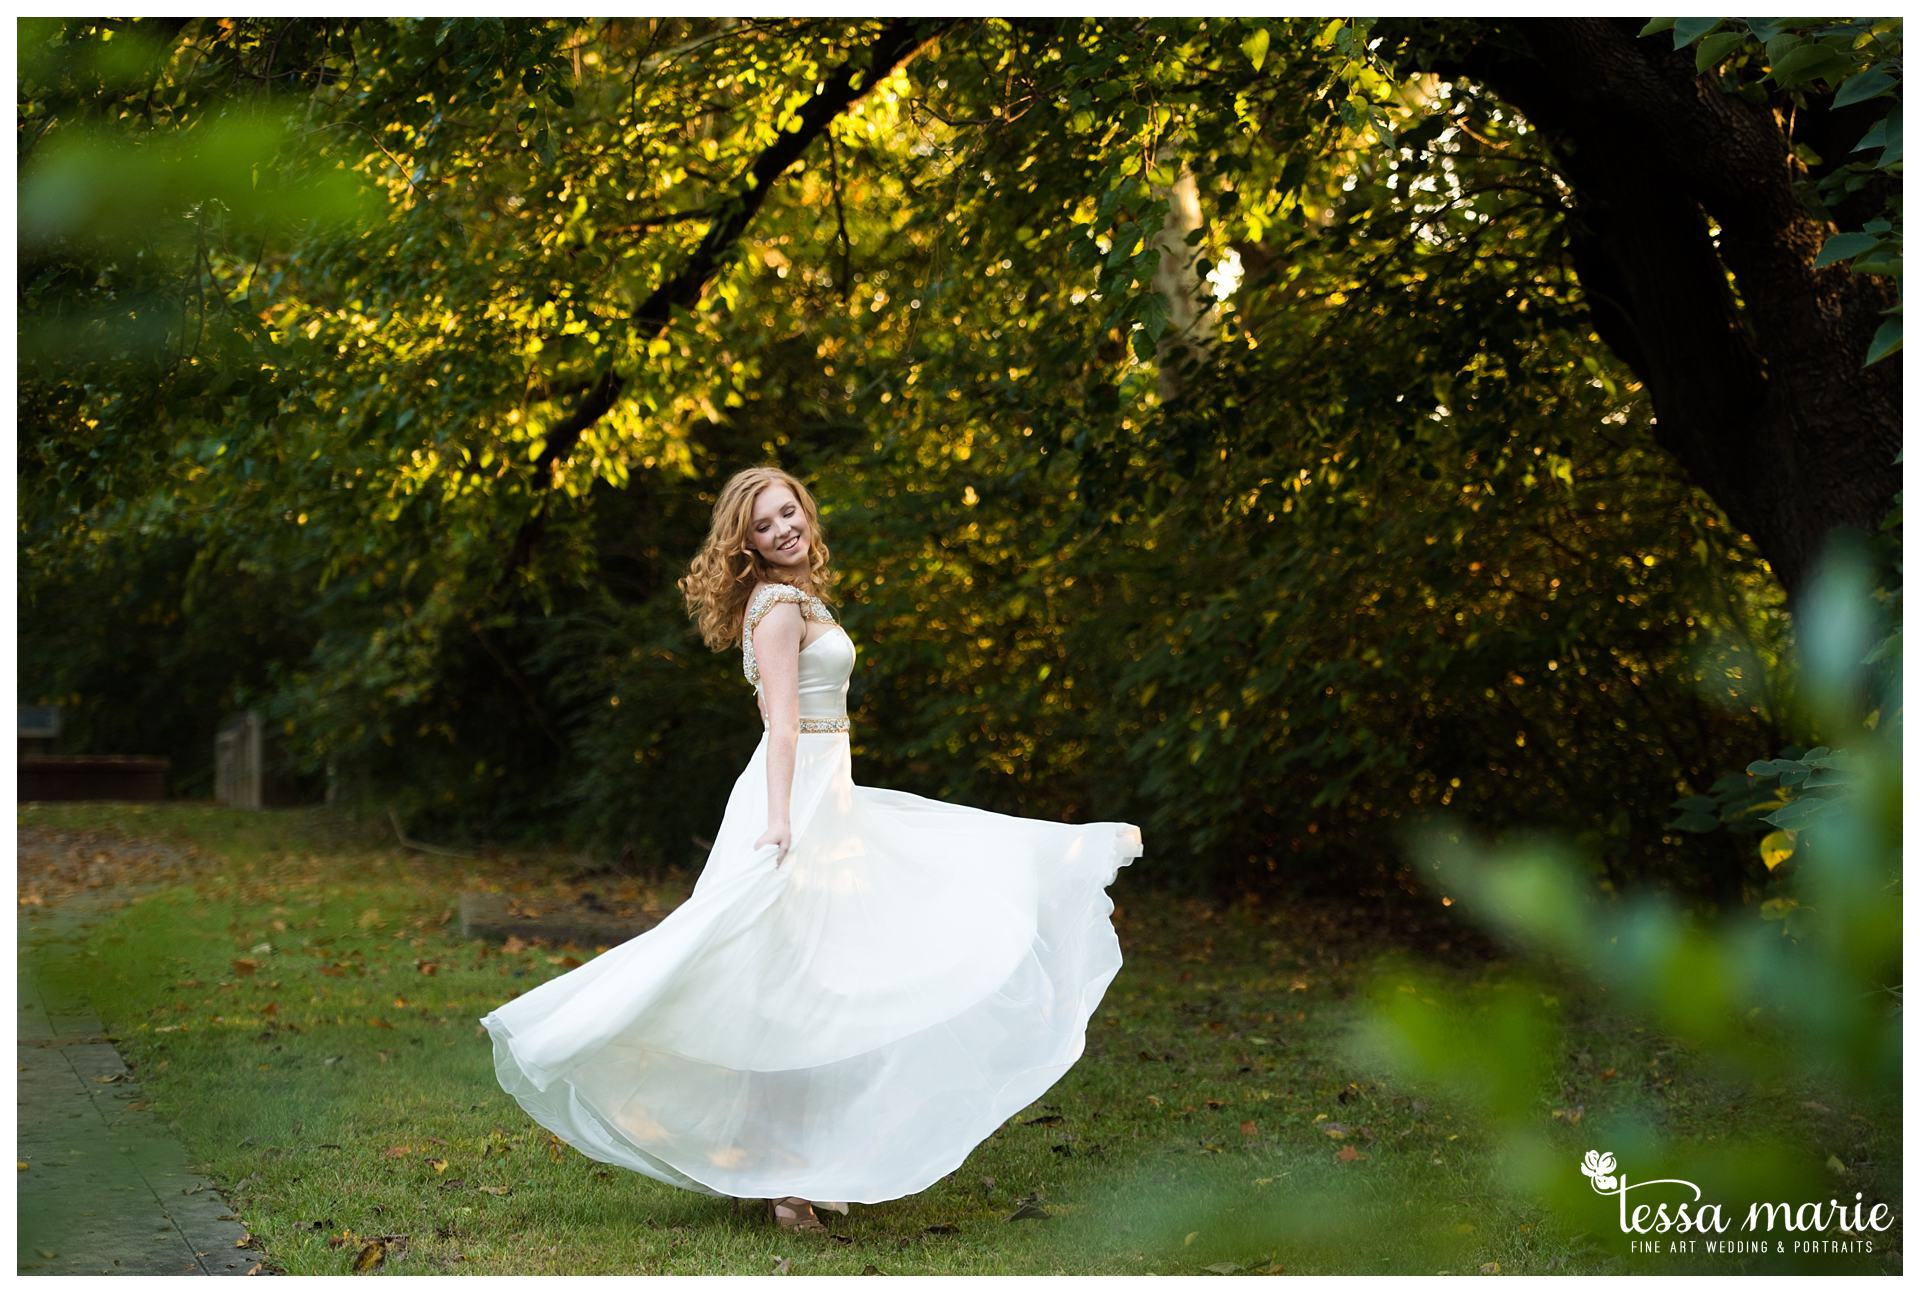 tessa_marie_weddings_legacy_story_focused_wedding_pictures_atlanta_wedding_photographer_family_pictures_portrait_Fine_art_memories_mothers_day_spring_moments_0345